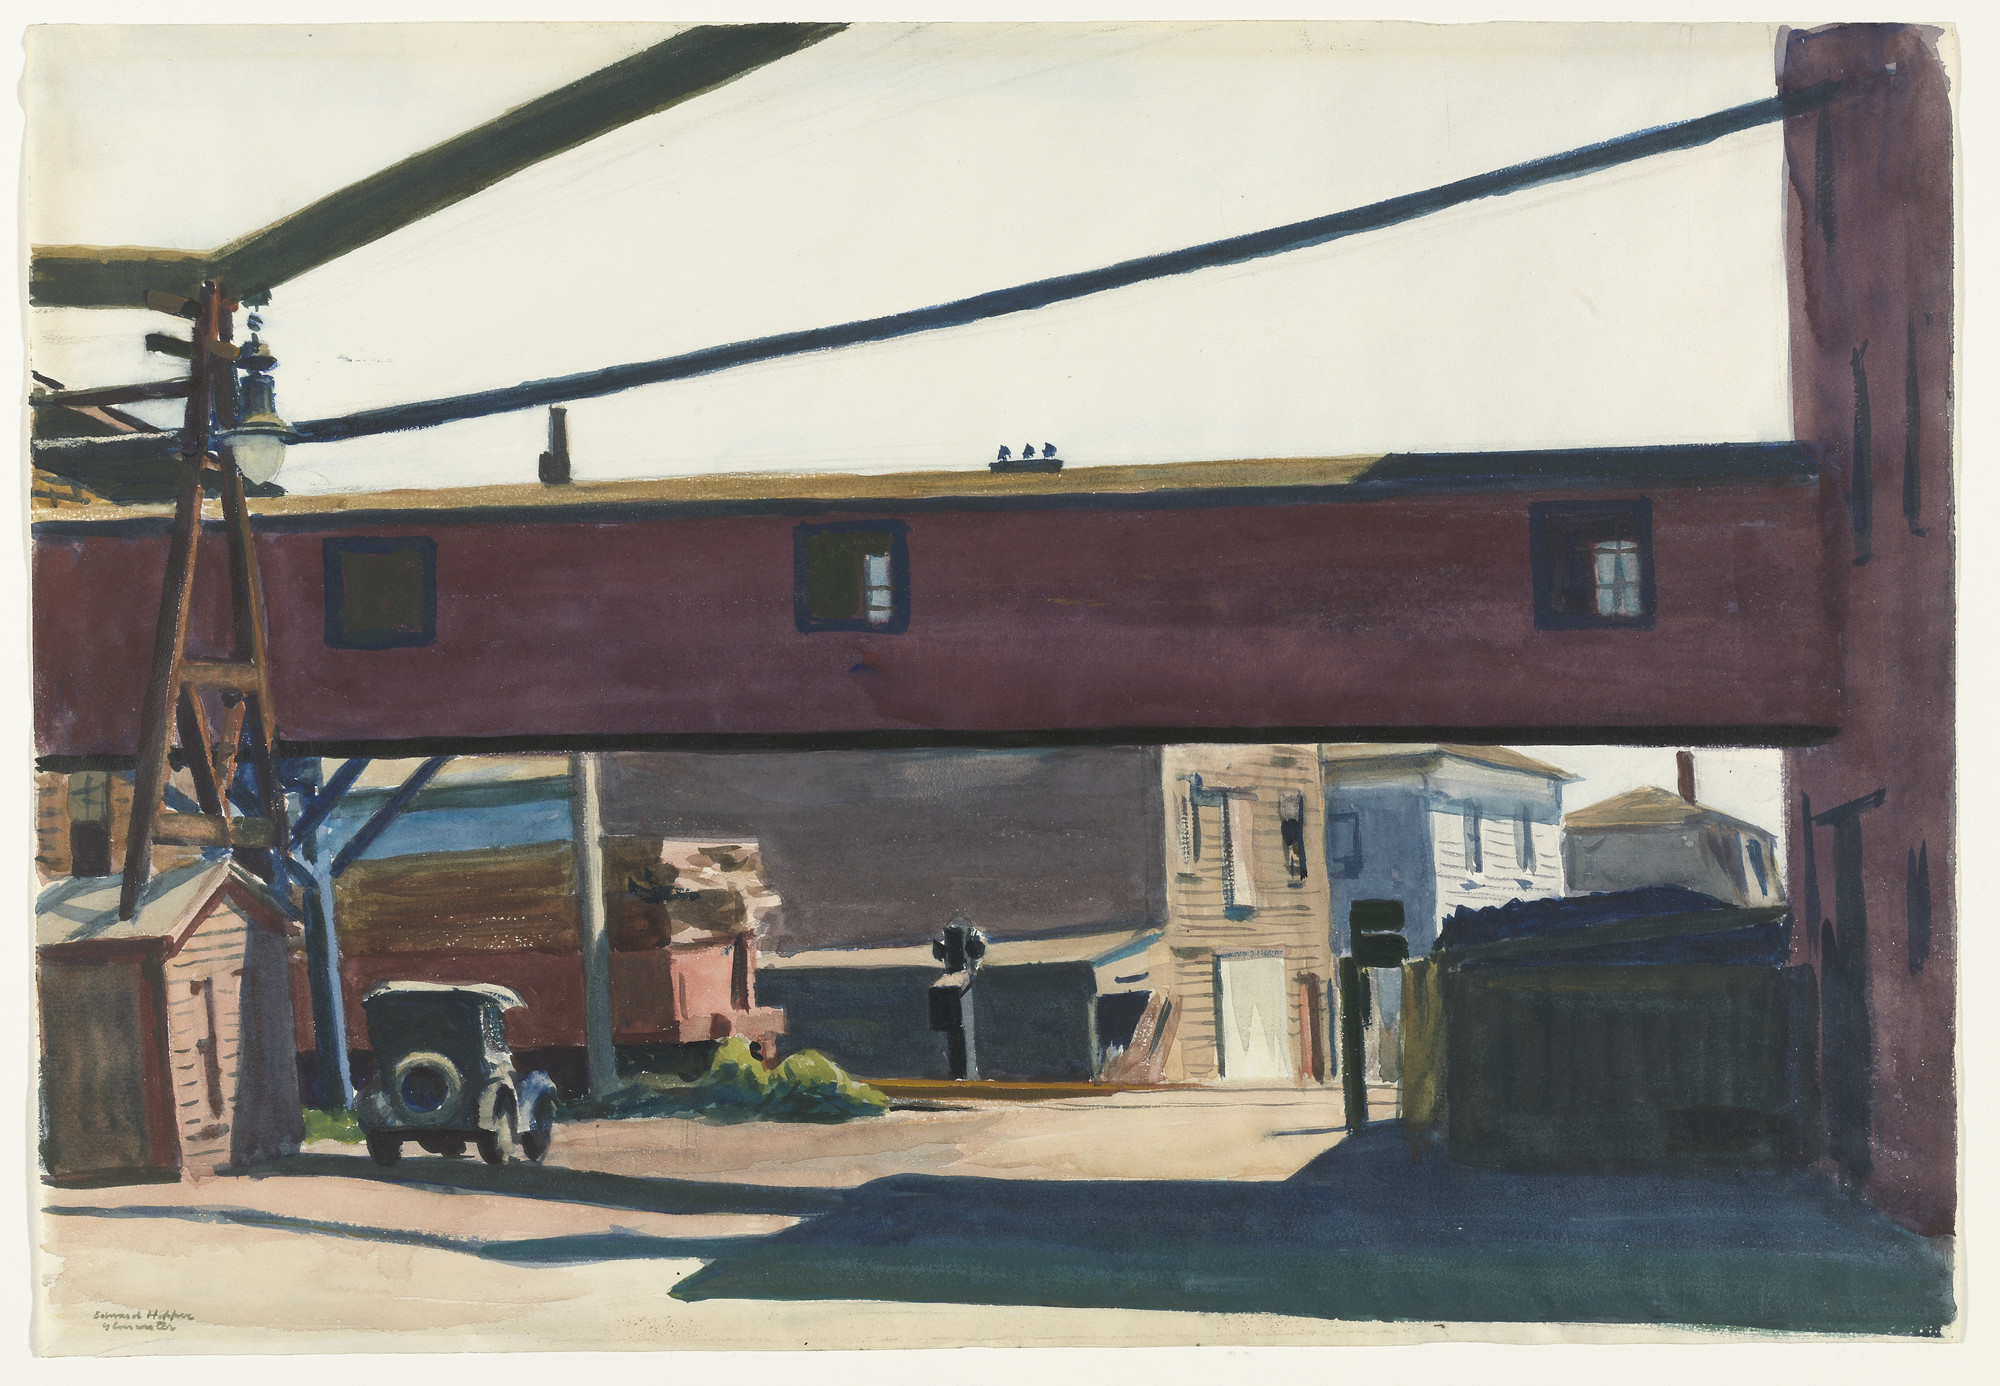 Edward Hopper. Box Factory, Gloucester. (1928)